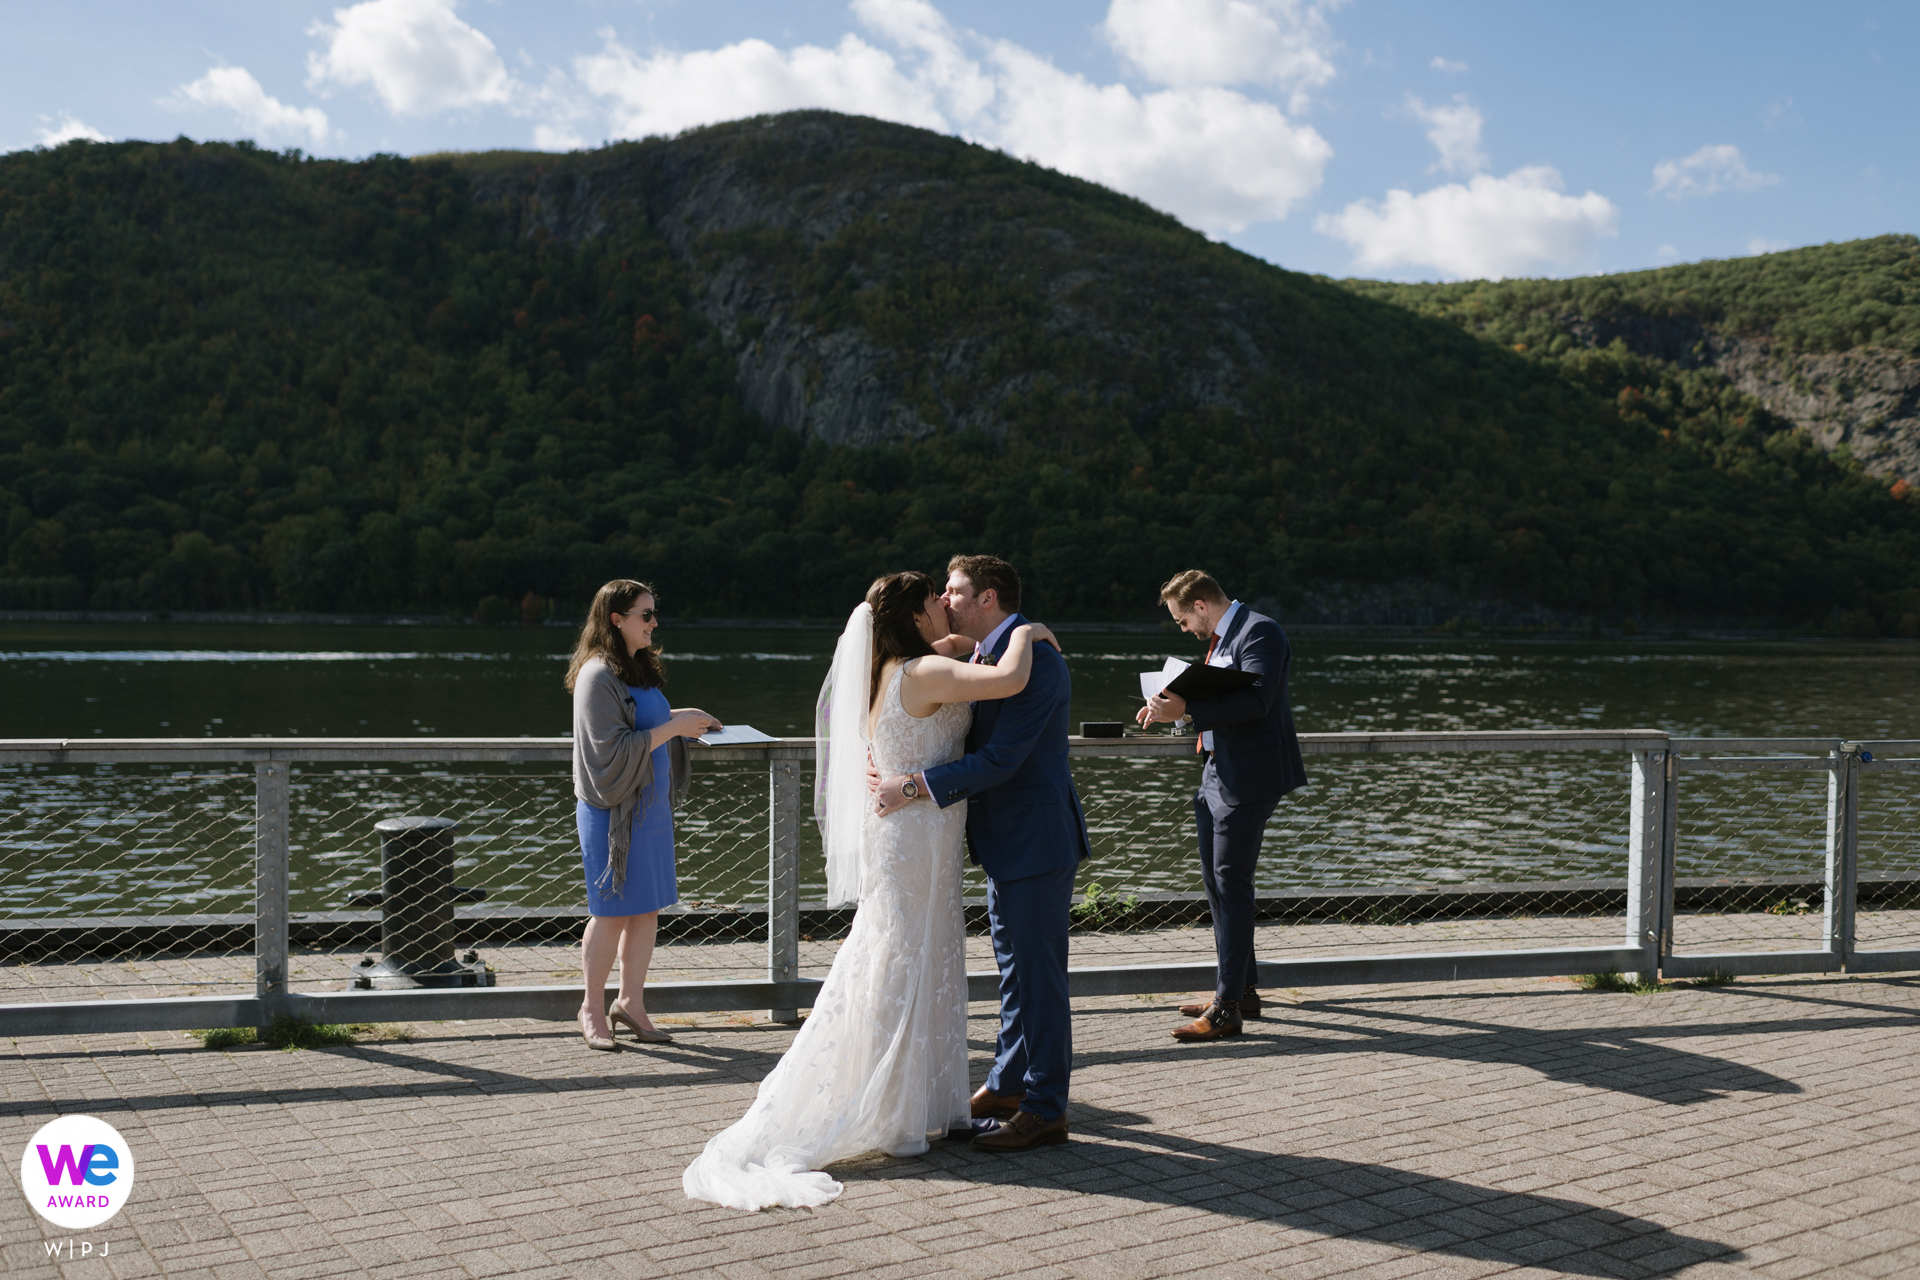 Dockside Park, Cold Spring, New York Wedding Photography | The couple embrace and kiss at the end of their wedding ceremony